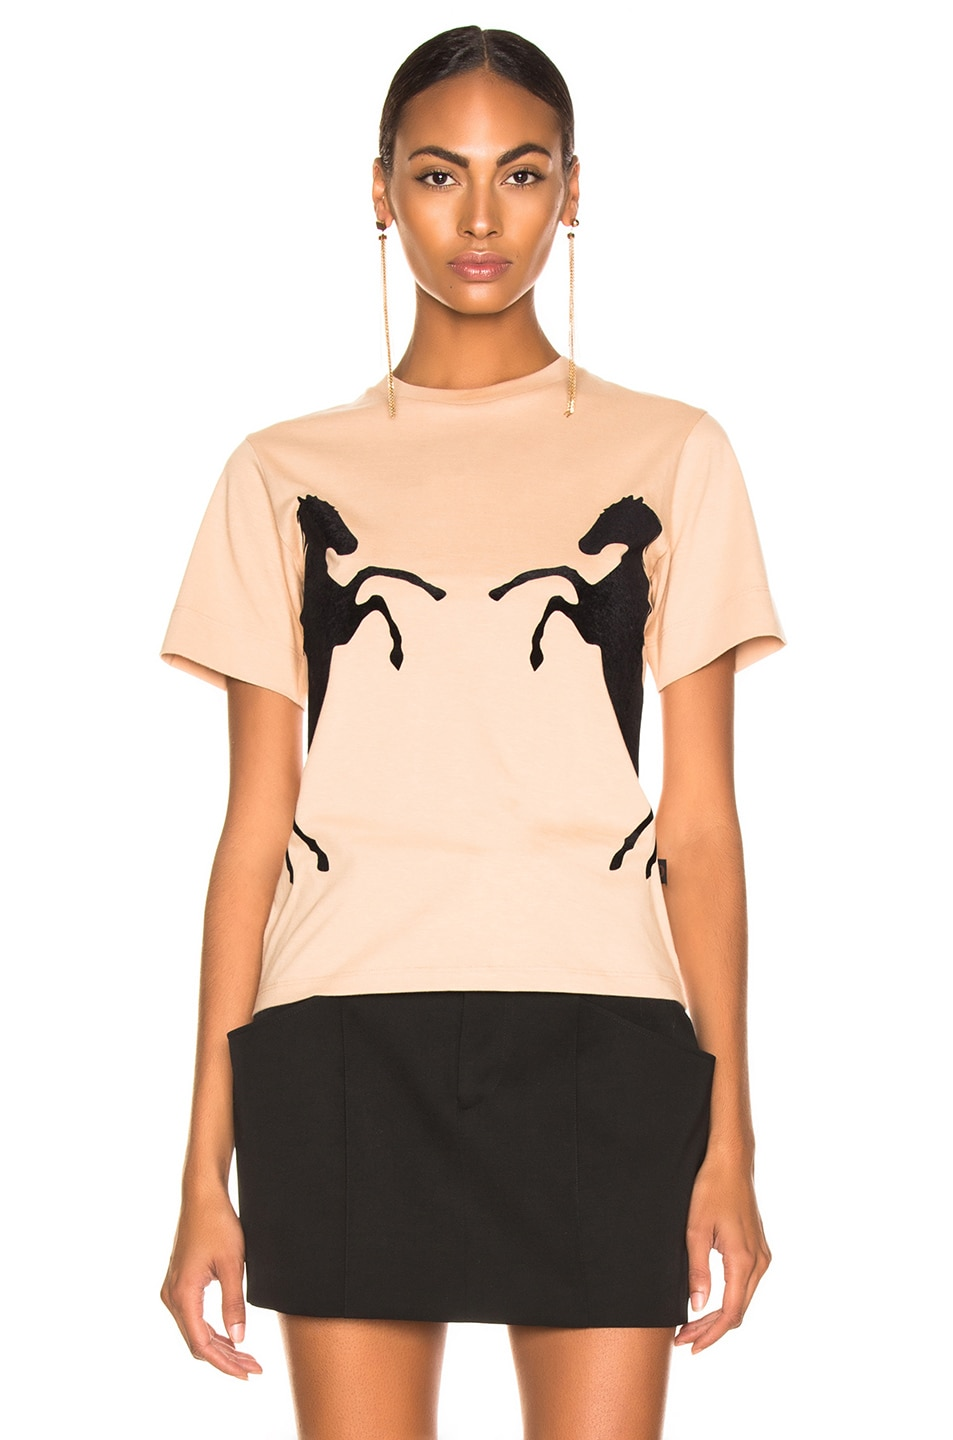 85%OFF Chloe Horse Graphic Tee Sandy Beige